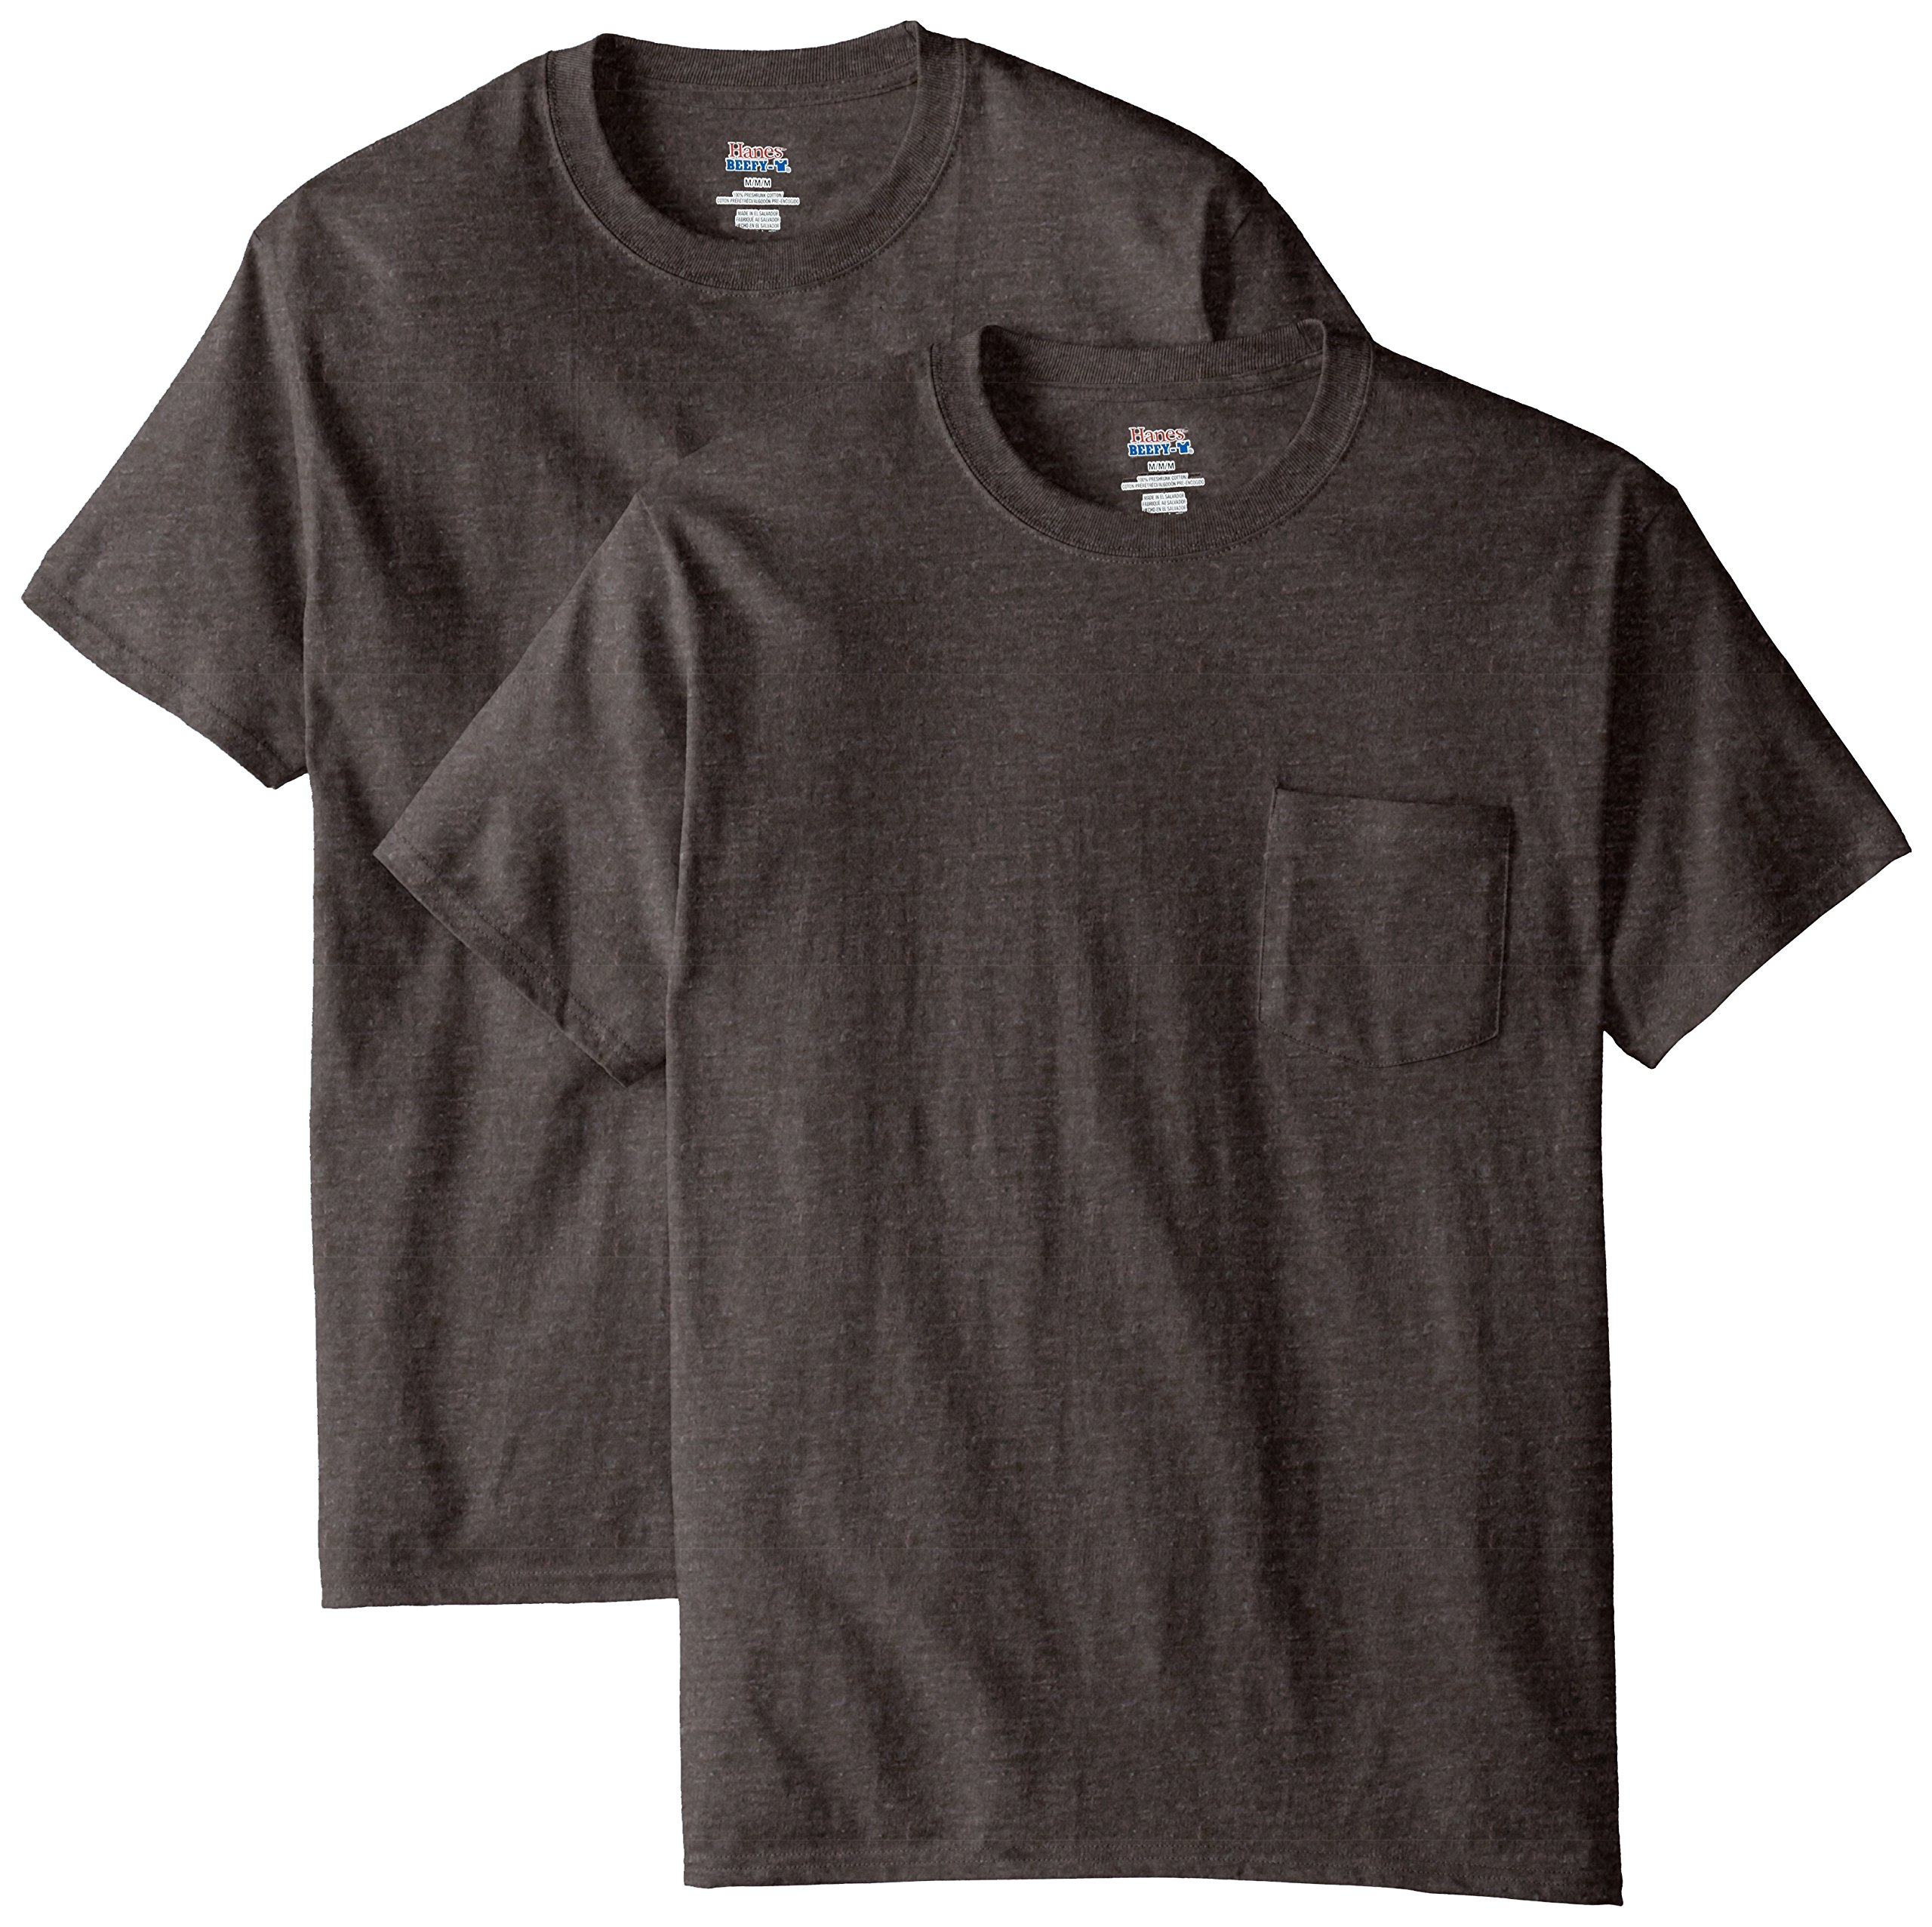 Hanes Men's 2 Pack Short Sleeve Pocket Beefy-t, Charcoal Heather, 2XL